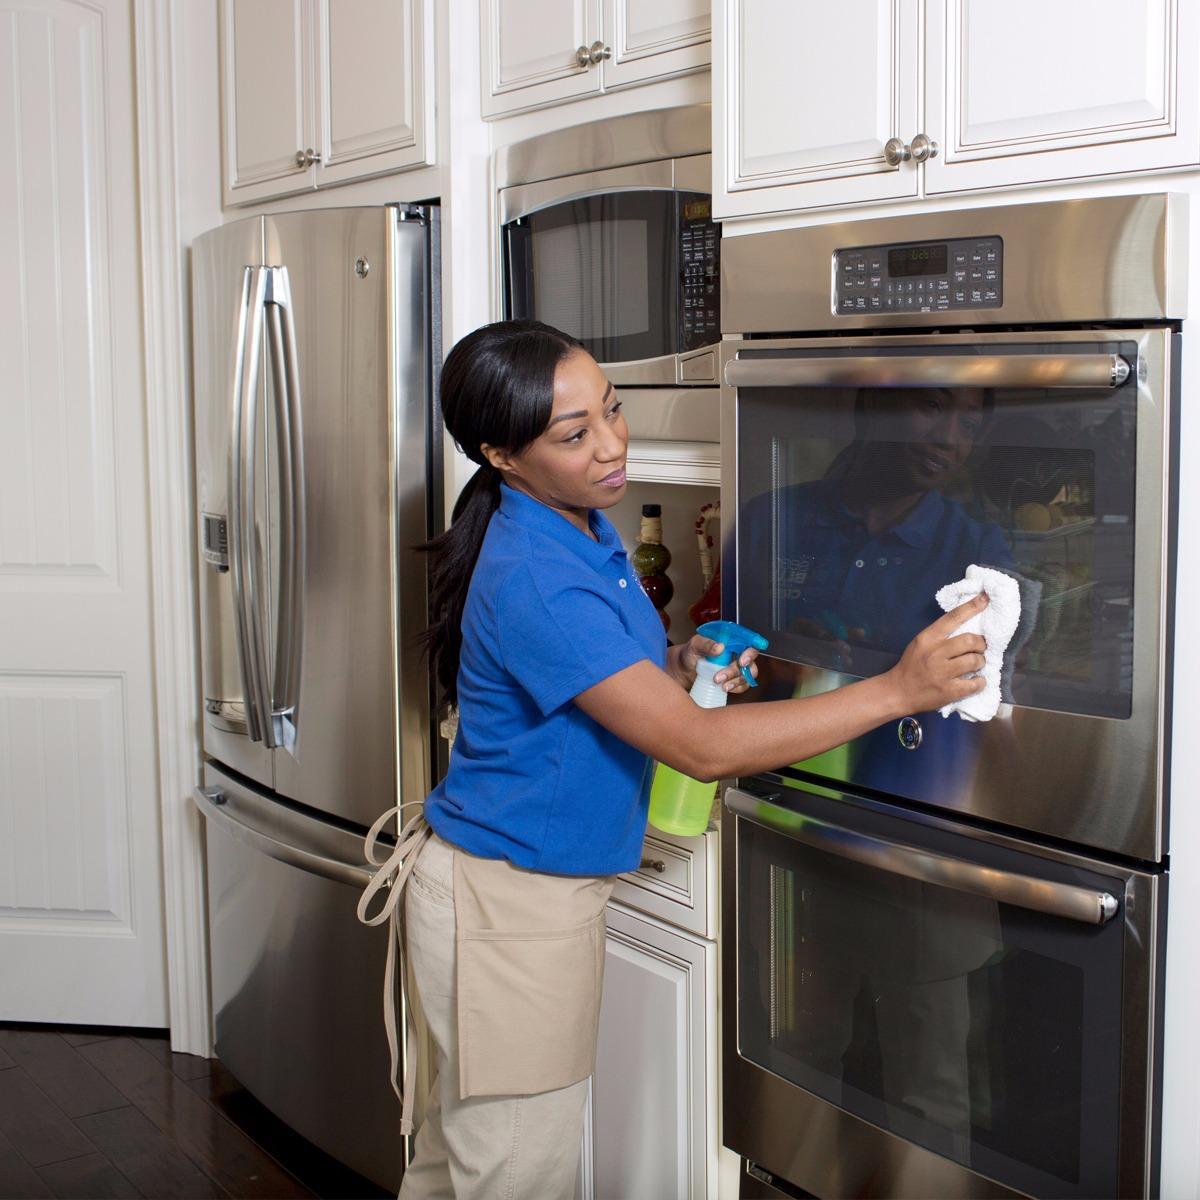 Sears Maid Services image 4